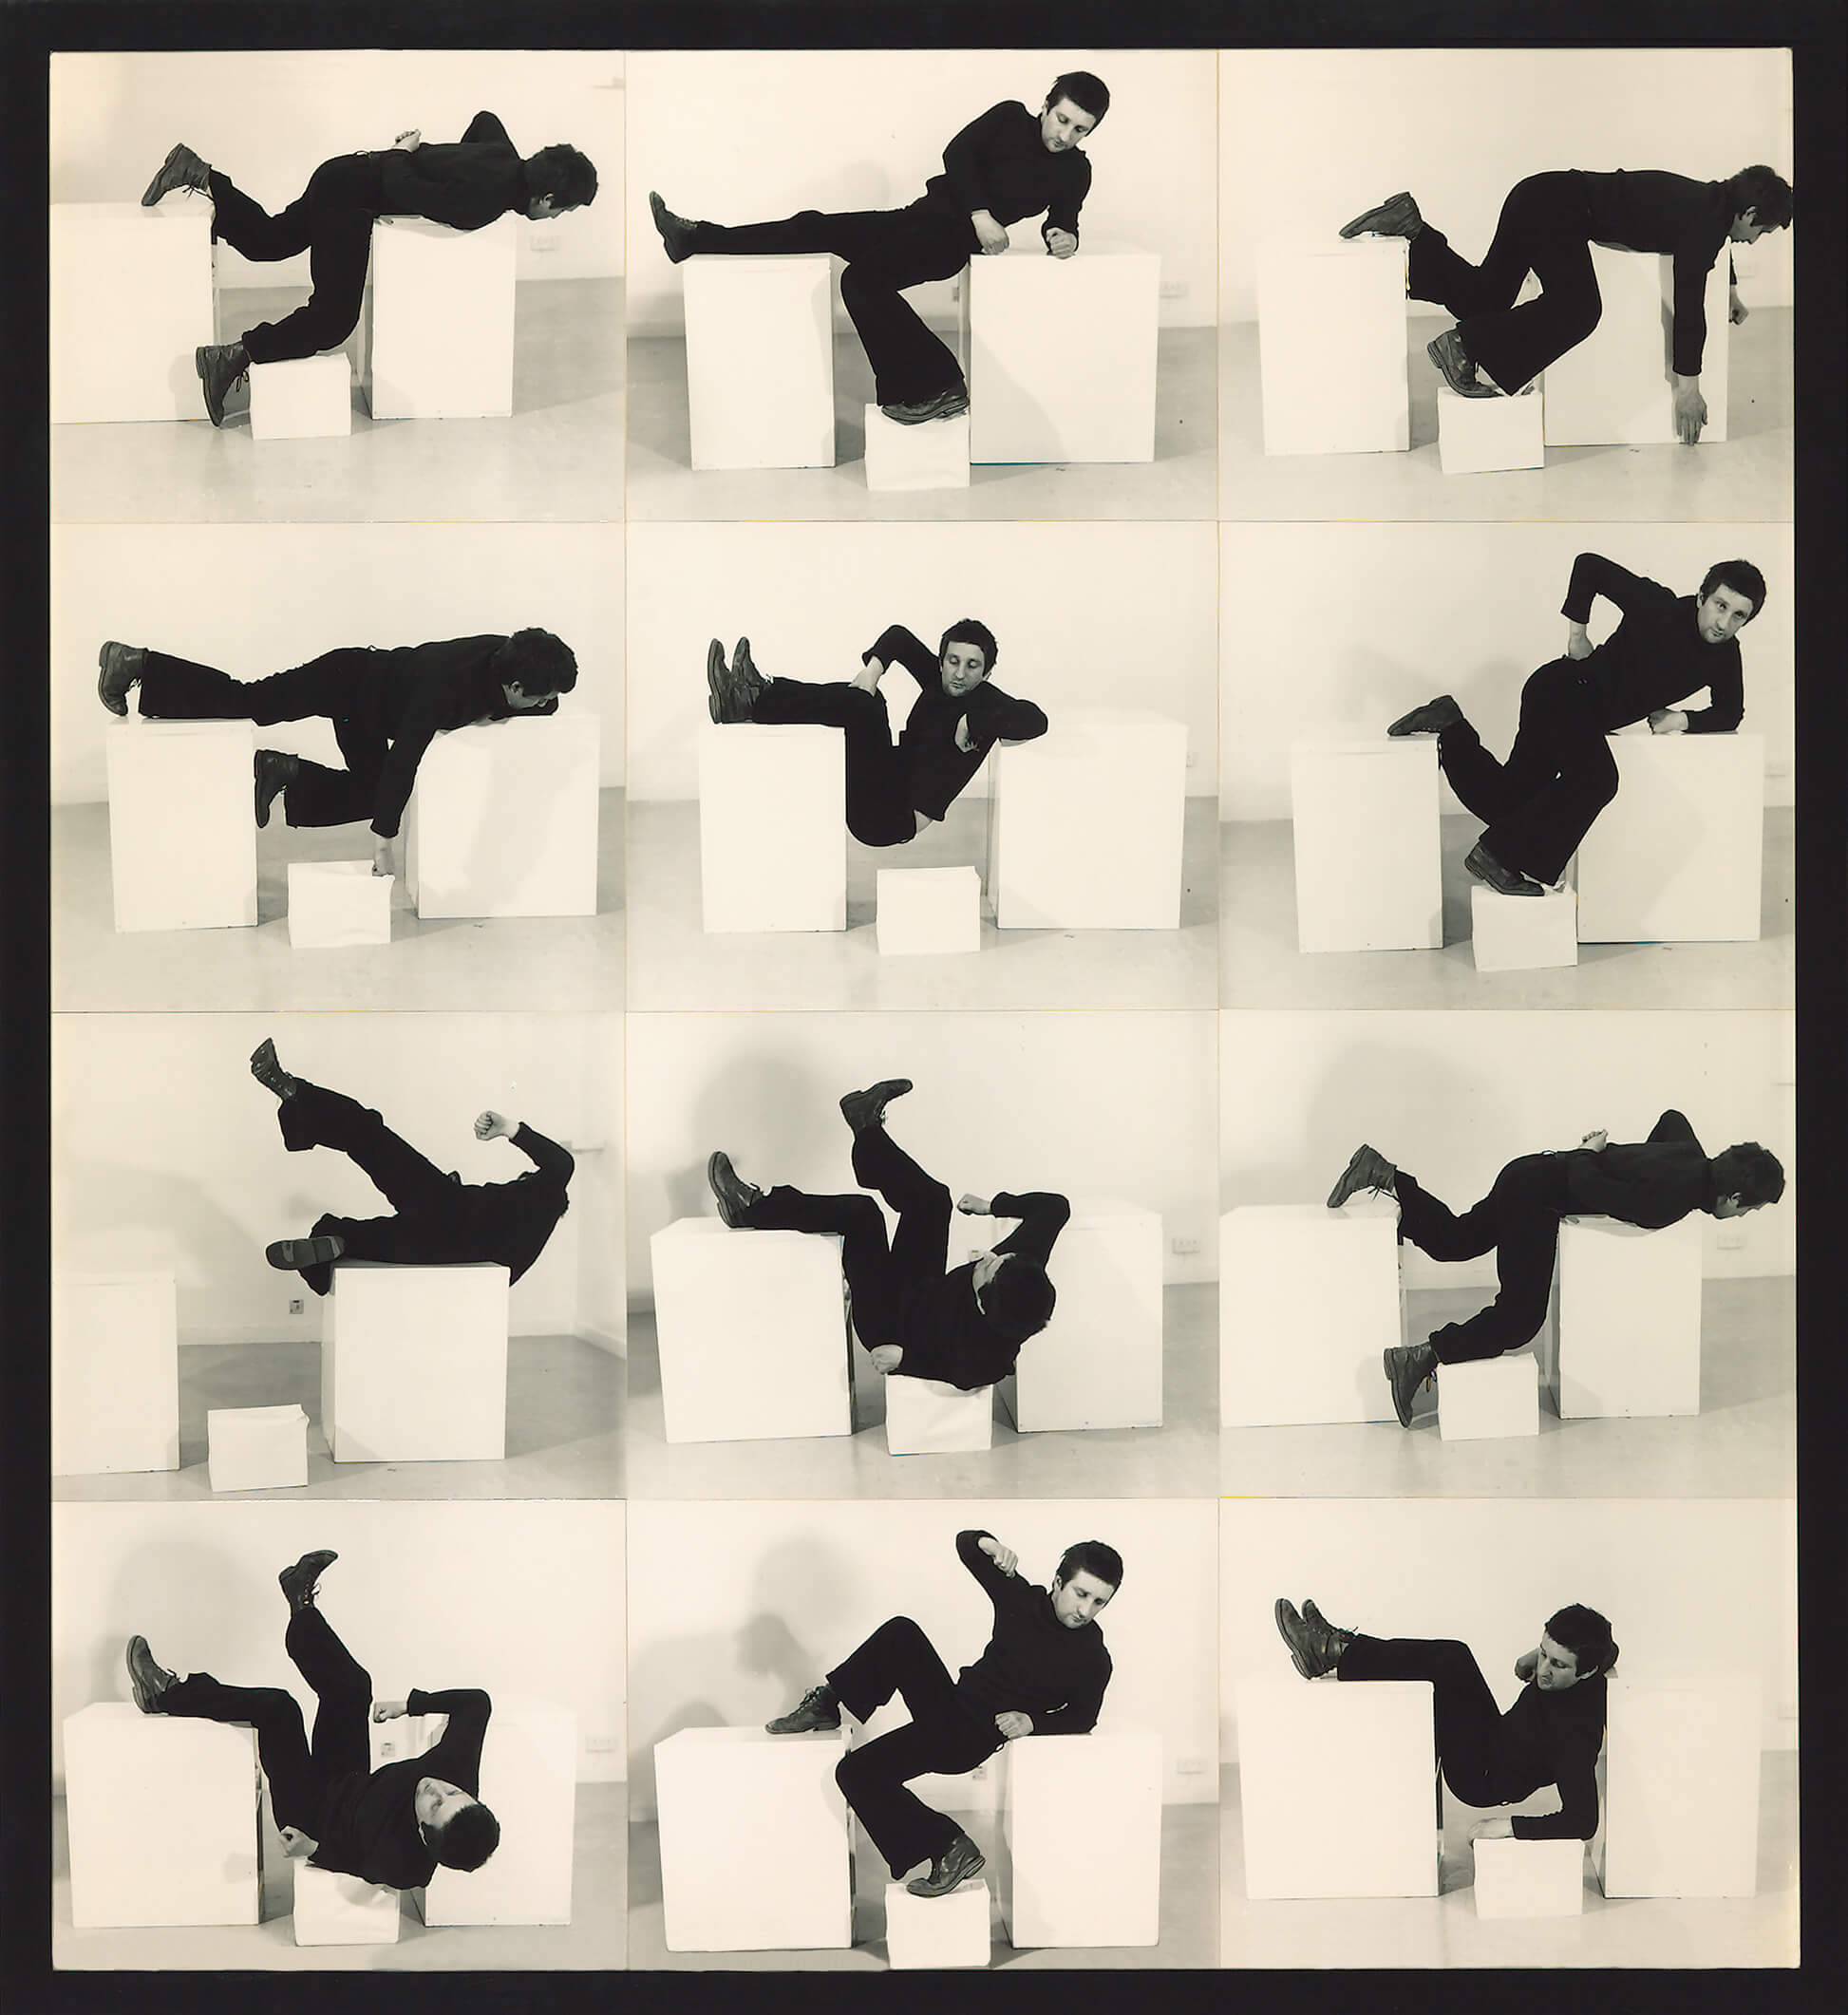 Bruce McLean: «Pose Work for Plinths III», de la serie Pose Works for Plinths. Situation Gallery, Londres, 1971. Tate, Londres